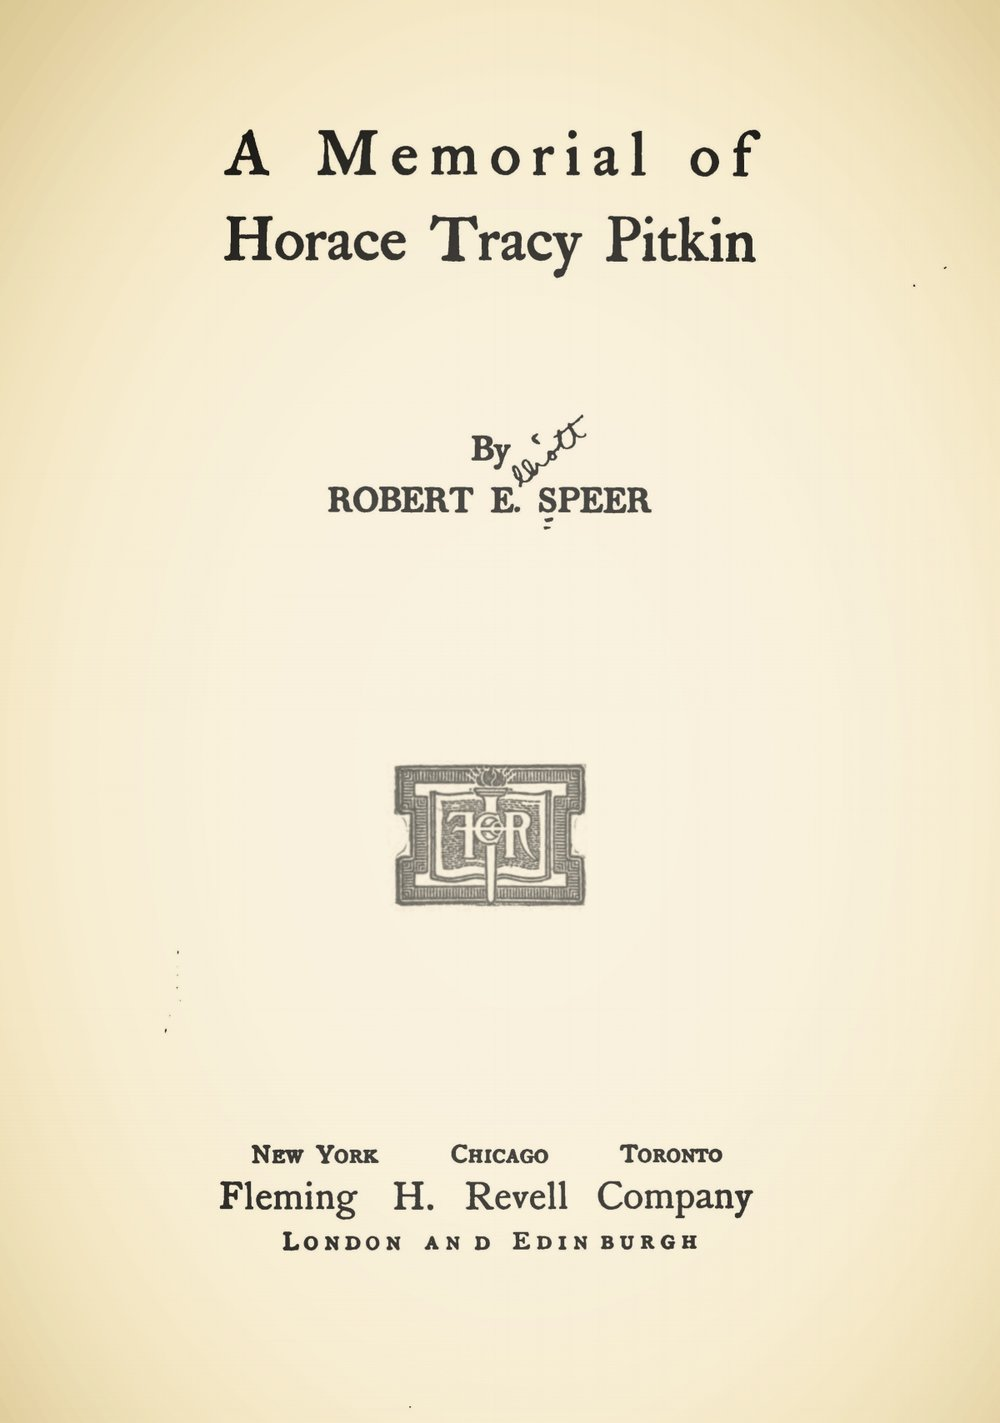 Speer, Robert Elliott, A Memorial of Horace Tracy Pitkin Title Page.jpg